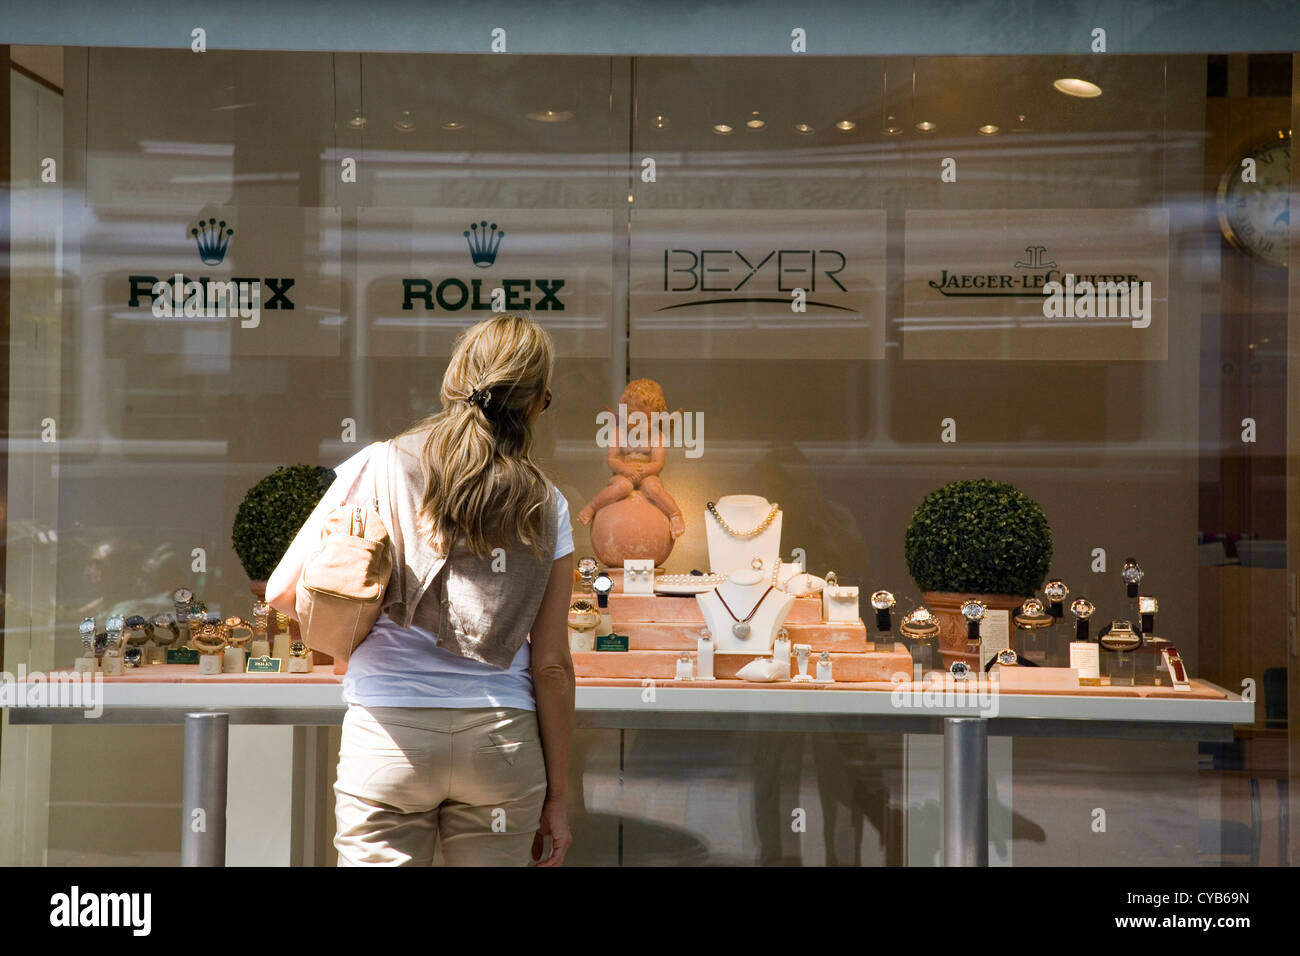 europe, switzerland, zurich, bahnhofstrasse, shopping - Stock Image